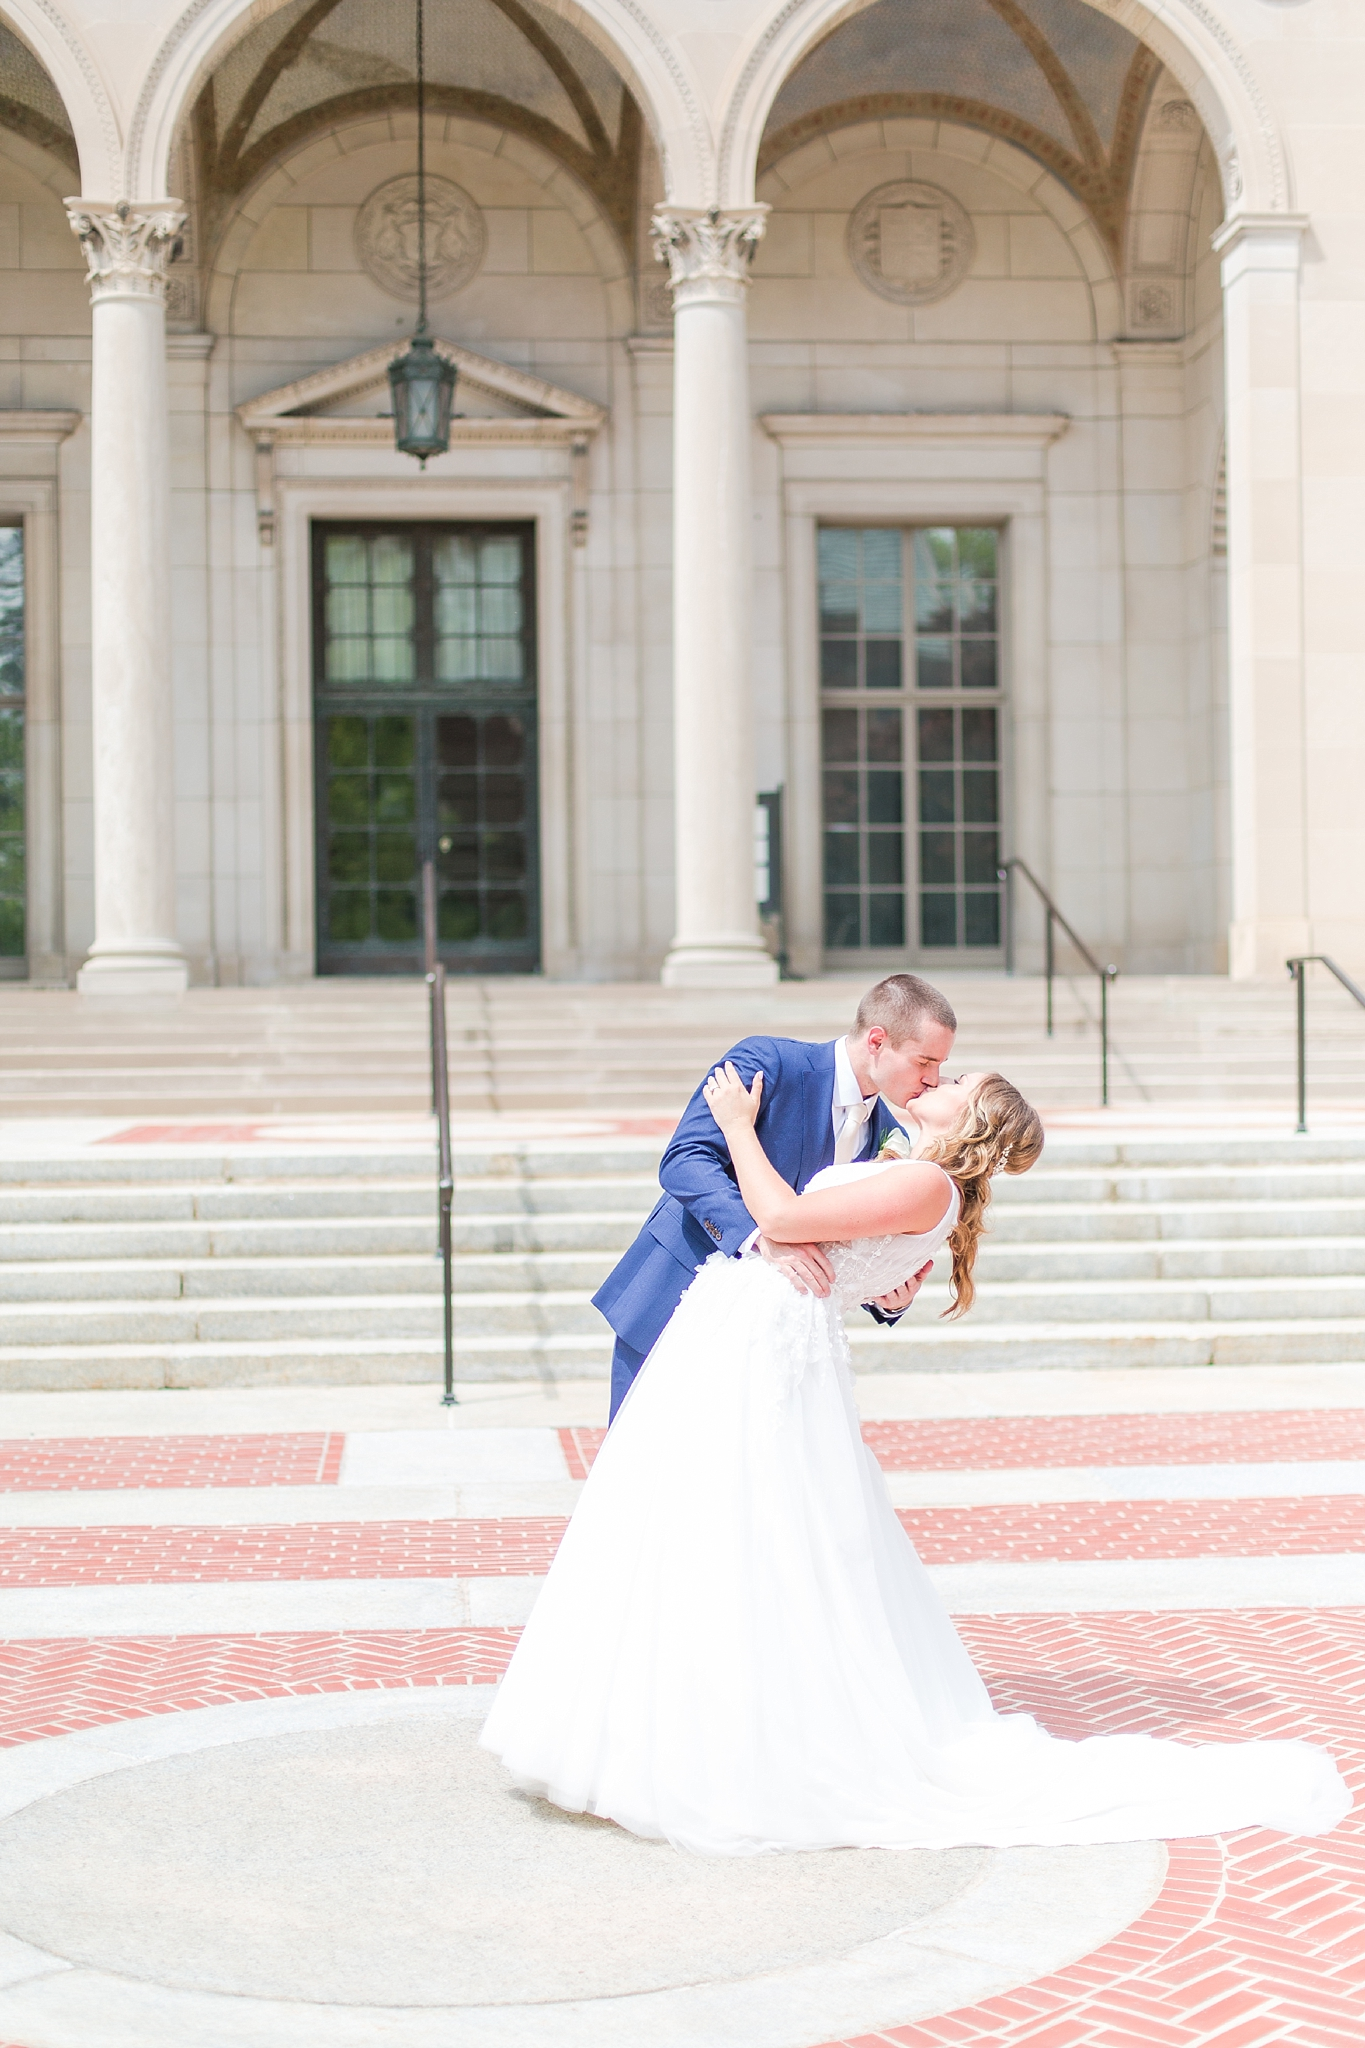 joyful-candid-laid-back-wedding-photos-in-ann-arbor-michigan-and-at-the-eagle-crest-golf-resort-by-courtney-carolyn-photography_0041.jpg